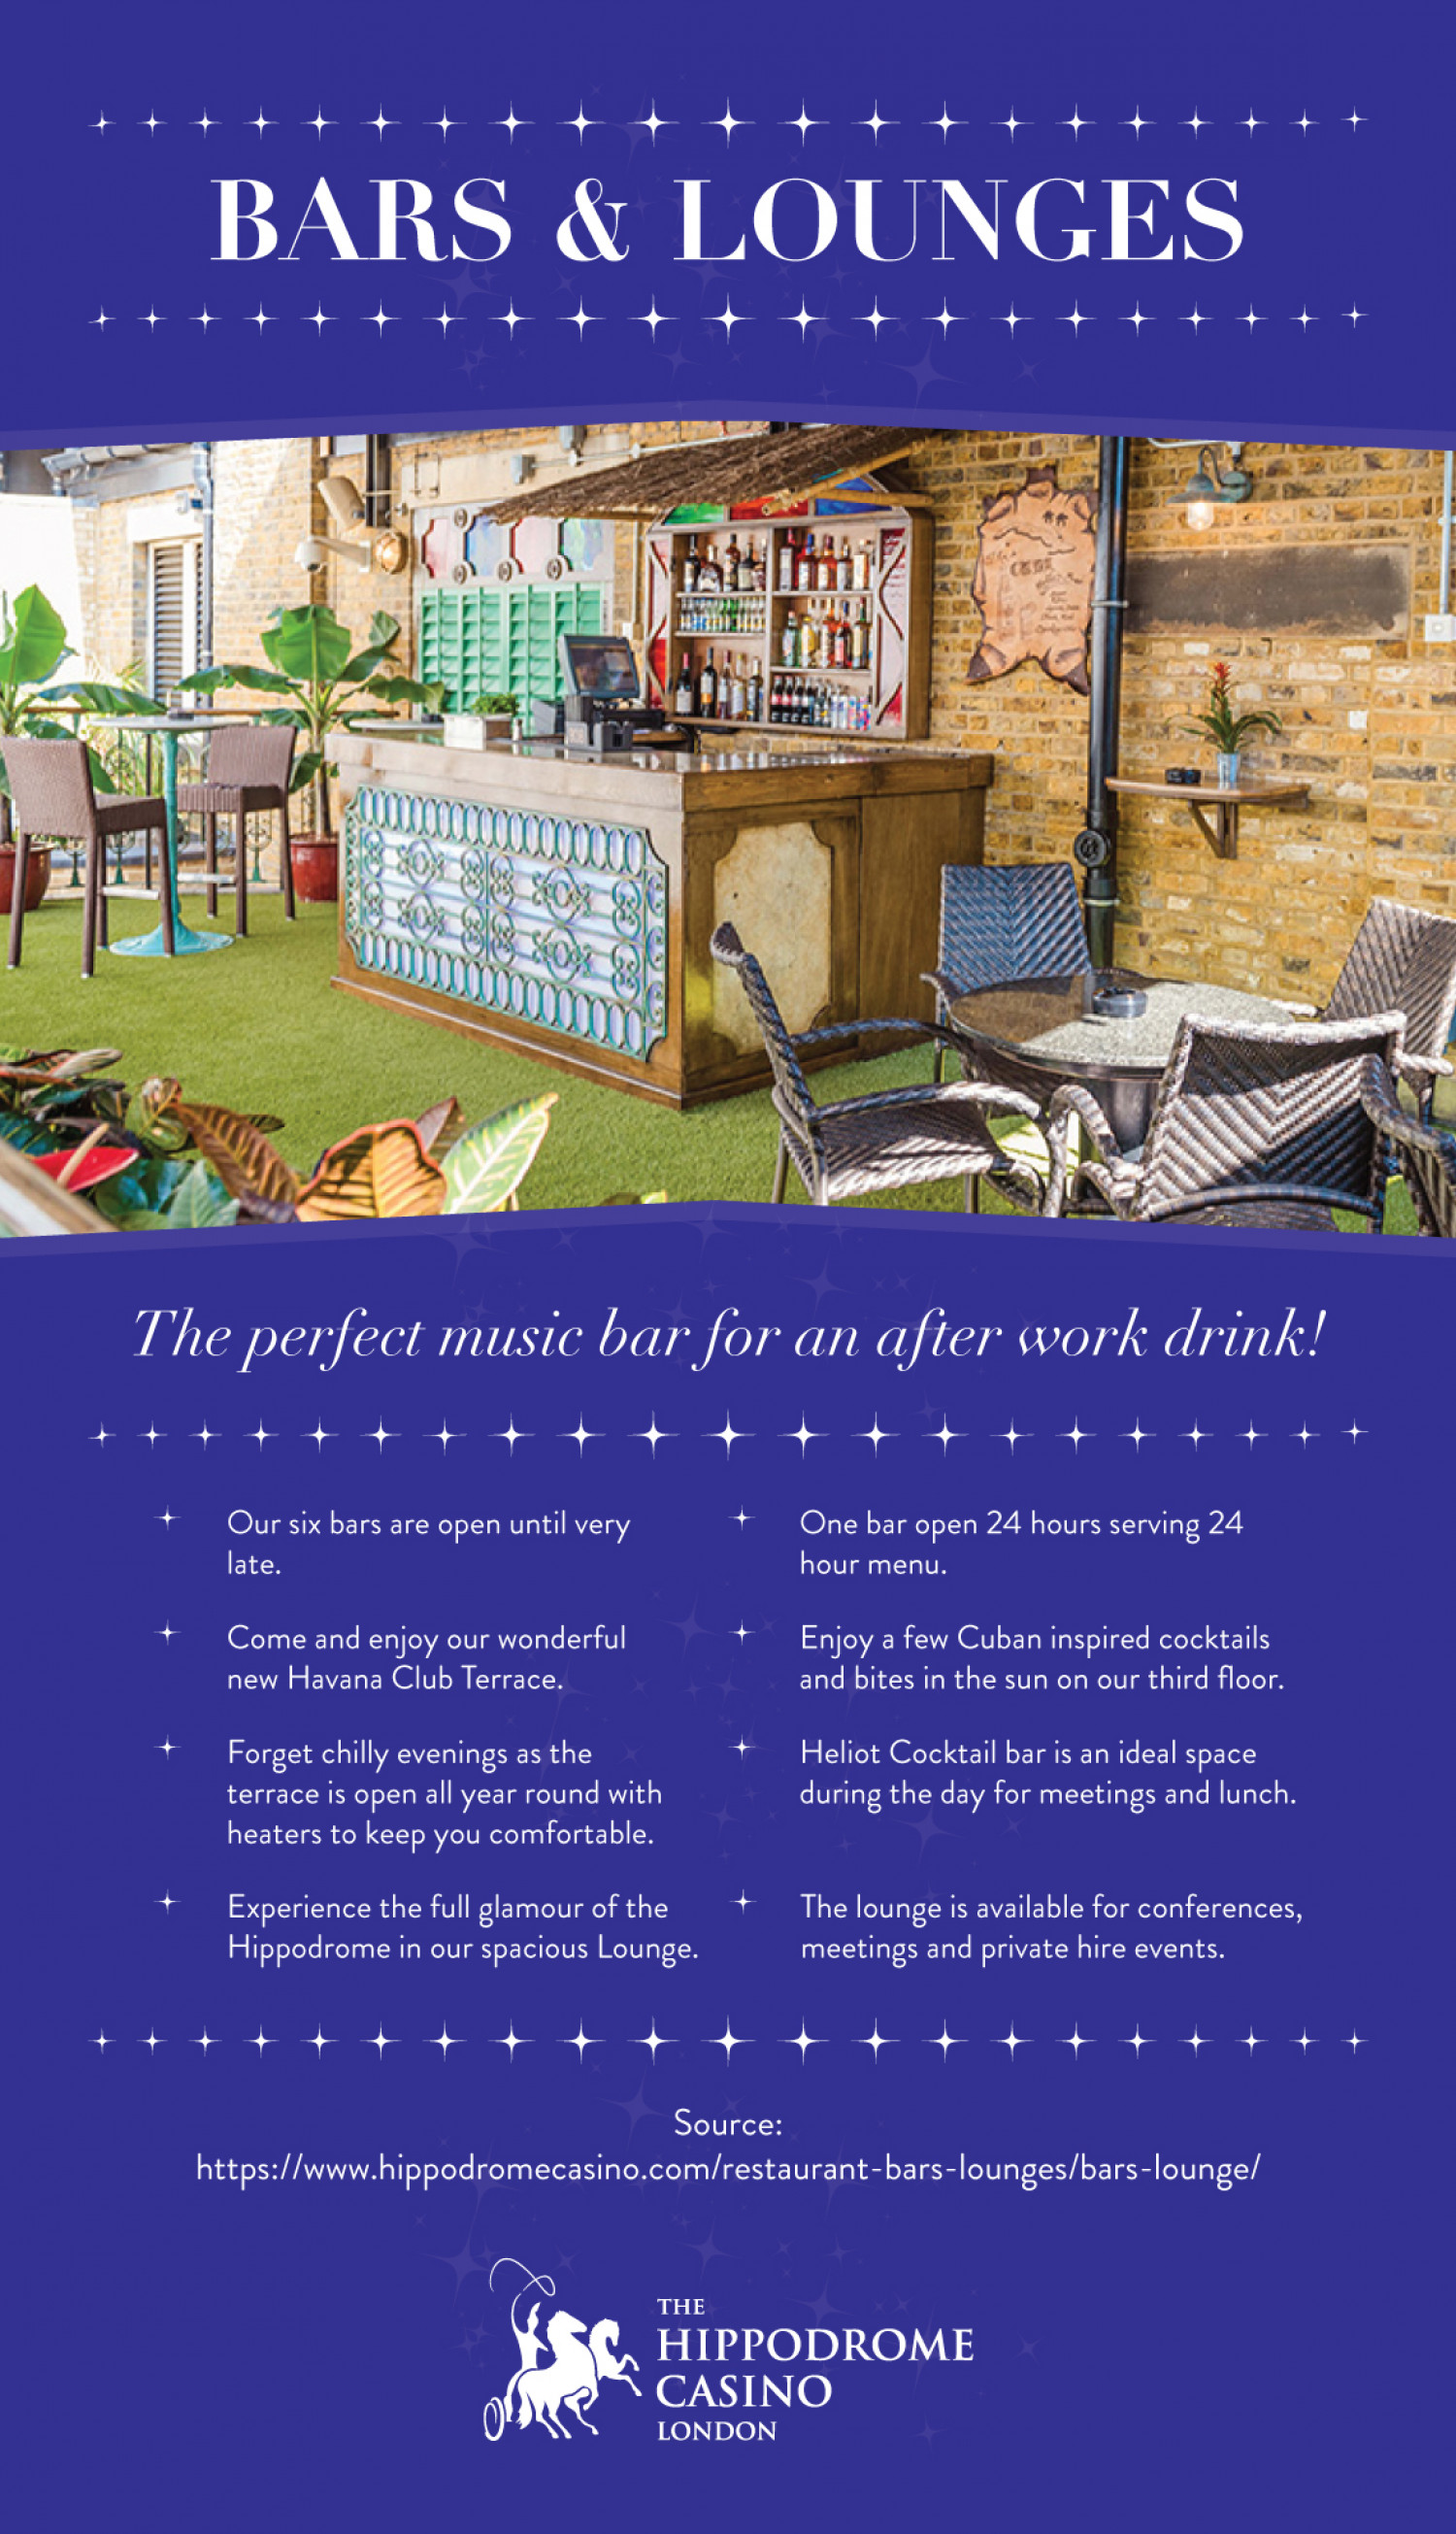 Bars & Lounges - The perfect Music Bar for an after work drink! Infographic